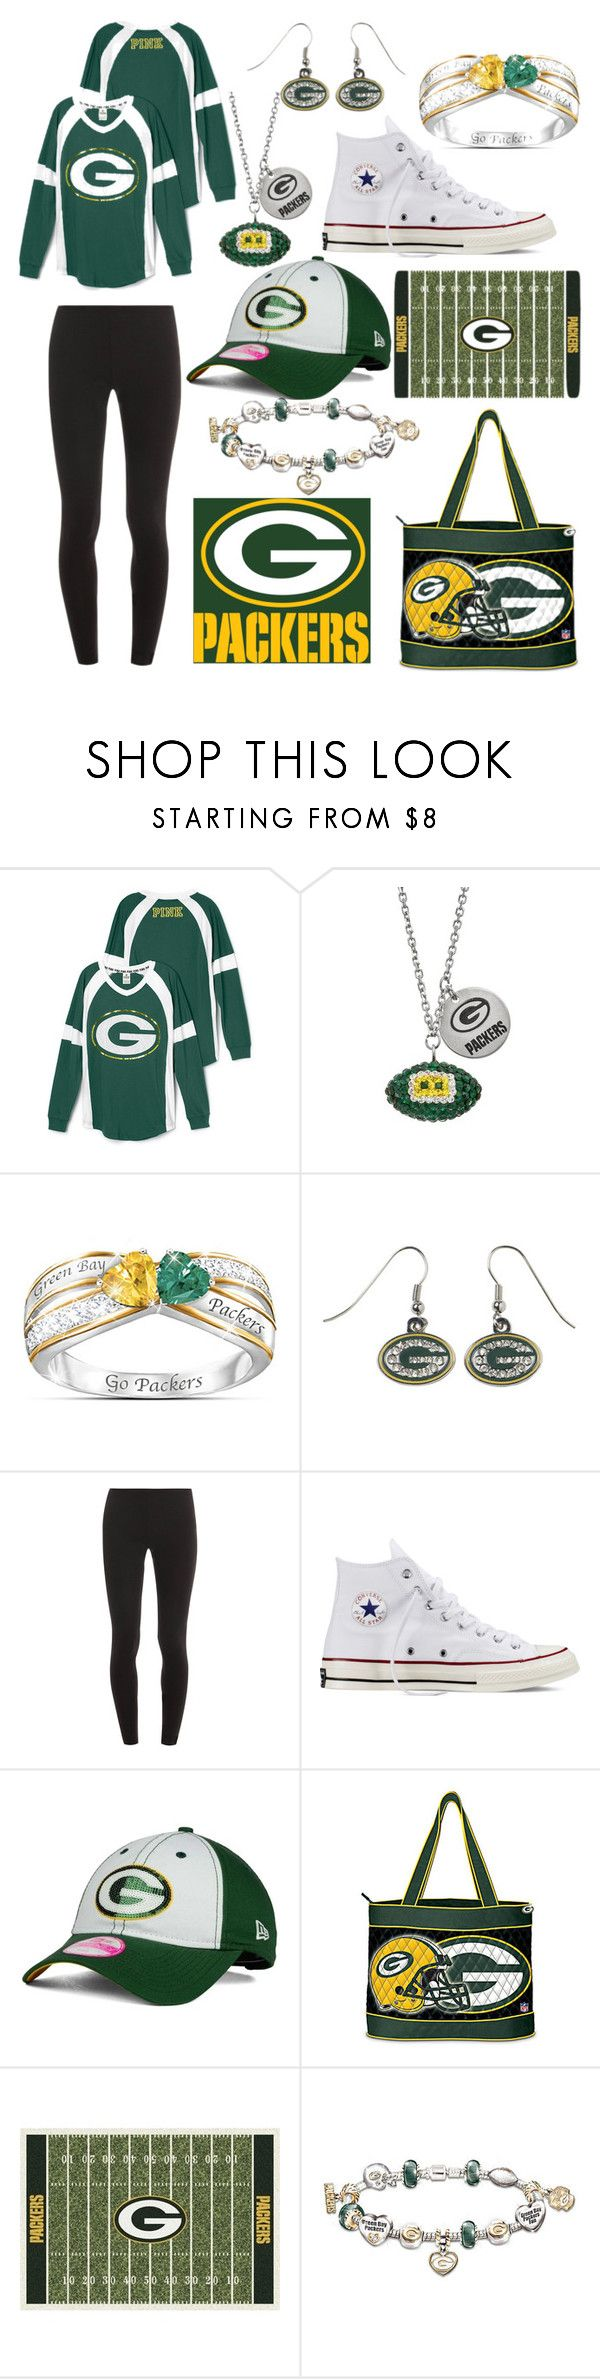 """Green Bay Packers"" by mfgsoccer ❤ liked on Polyvore featuring The Bradford Exchange, Splendid, Converse, New Era and Milliken"